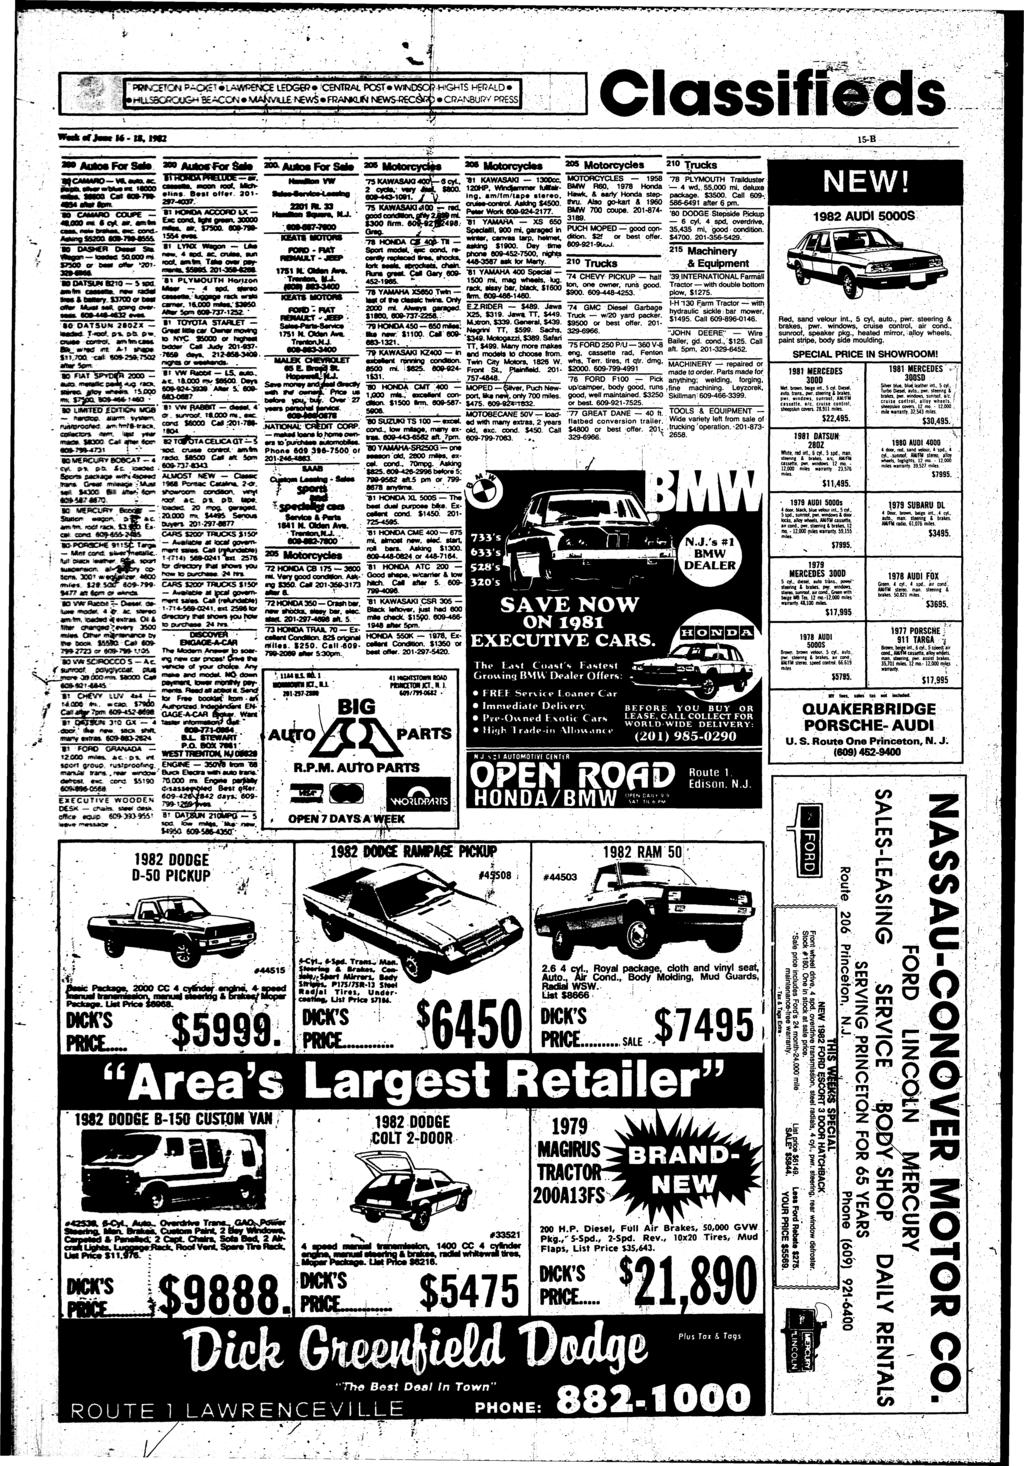 thuid y june 47 1982 rich pipeling photo pdf 1921 Silver Dollar Value l dg6r c8ntoat post windsor mghts herald ti mcz 15